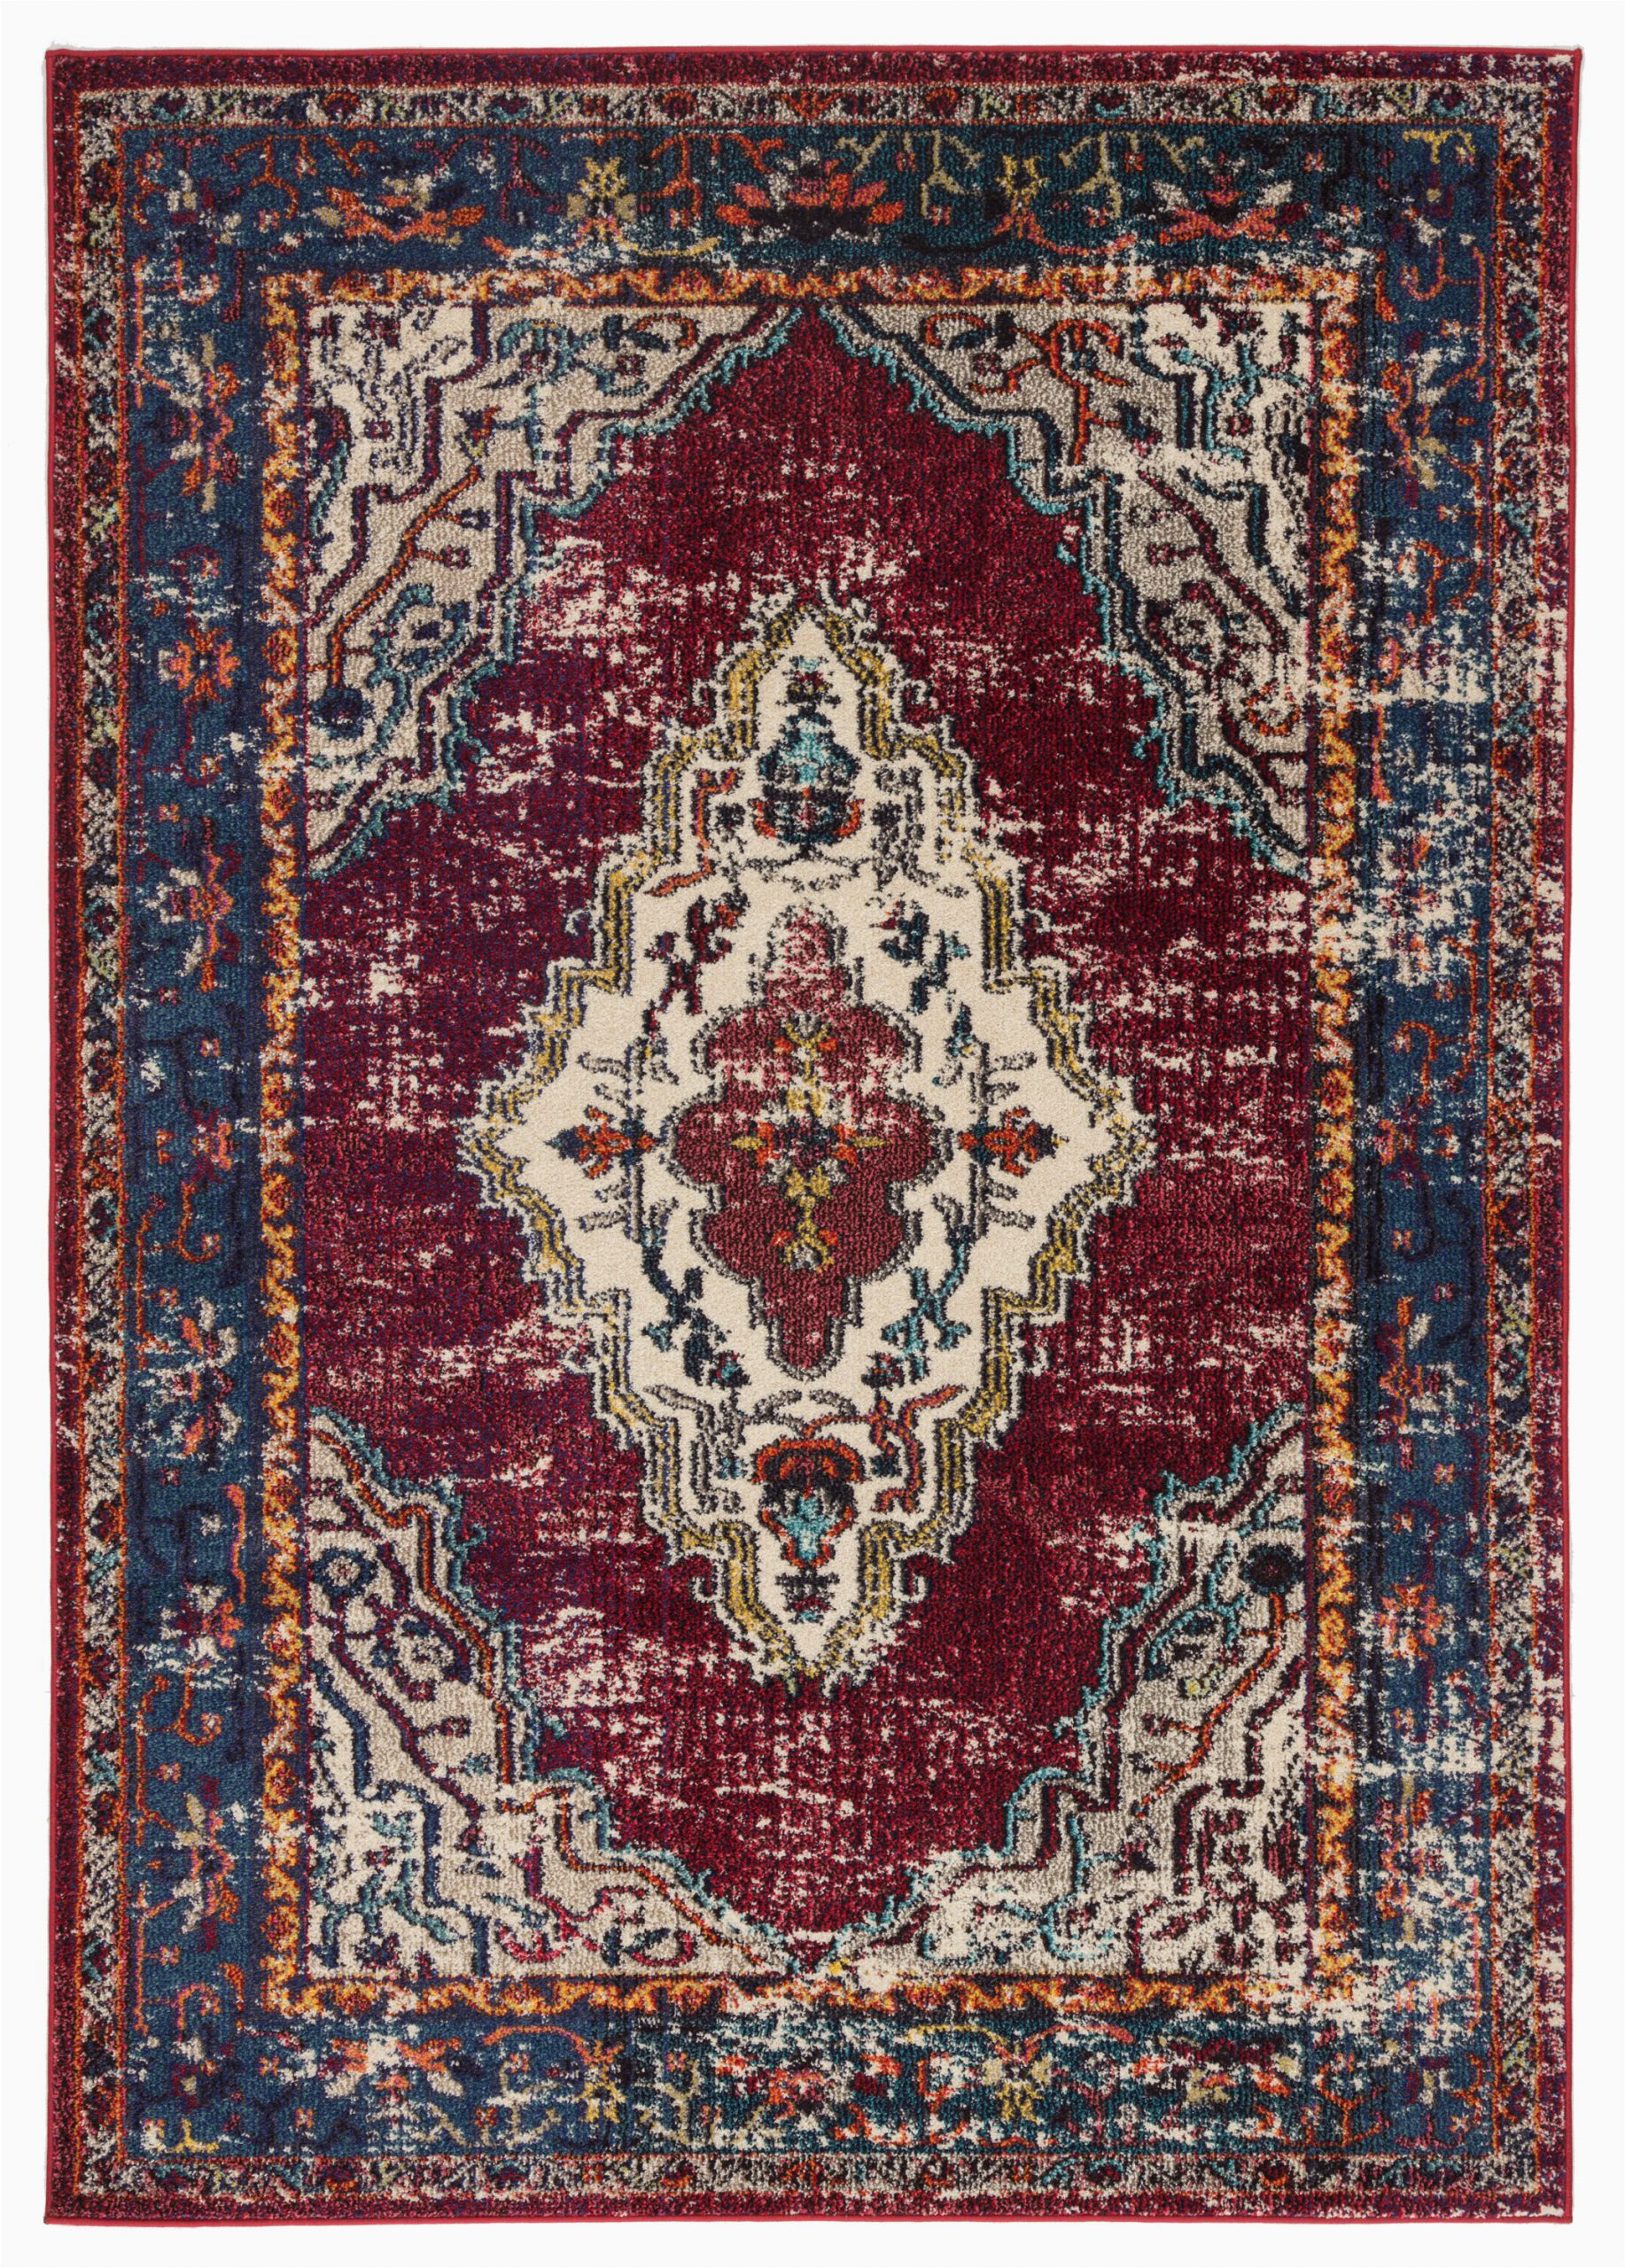 avianna persian inspired medallion maroonbluebrown area rug